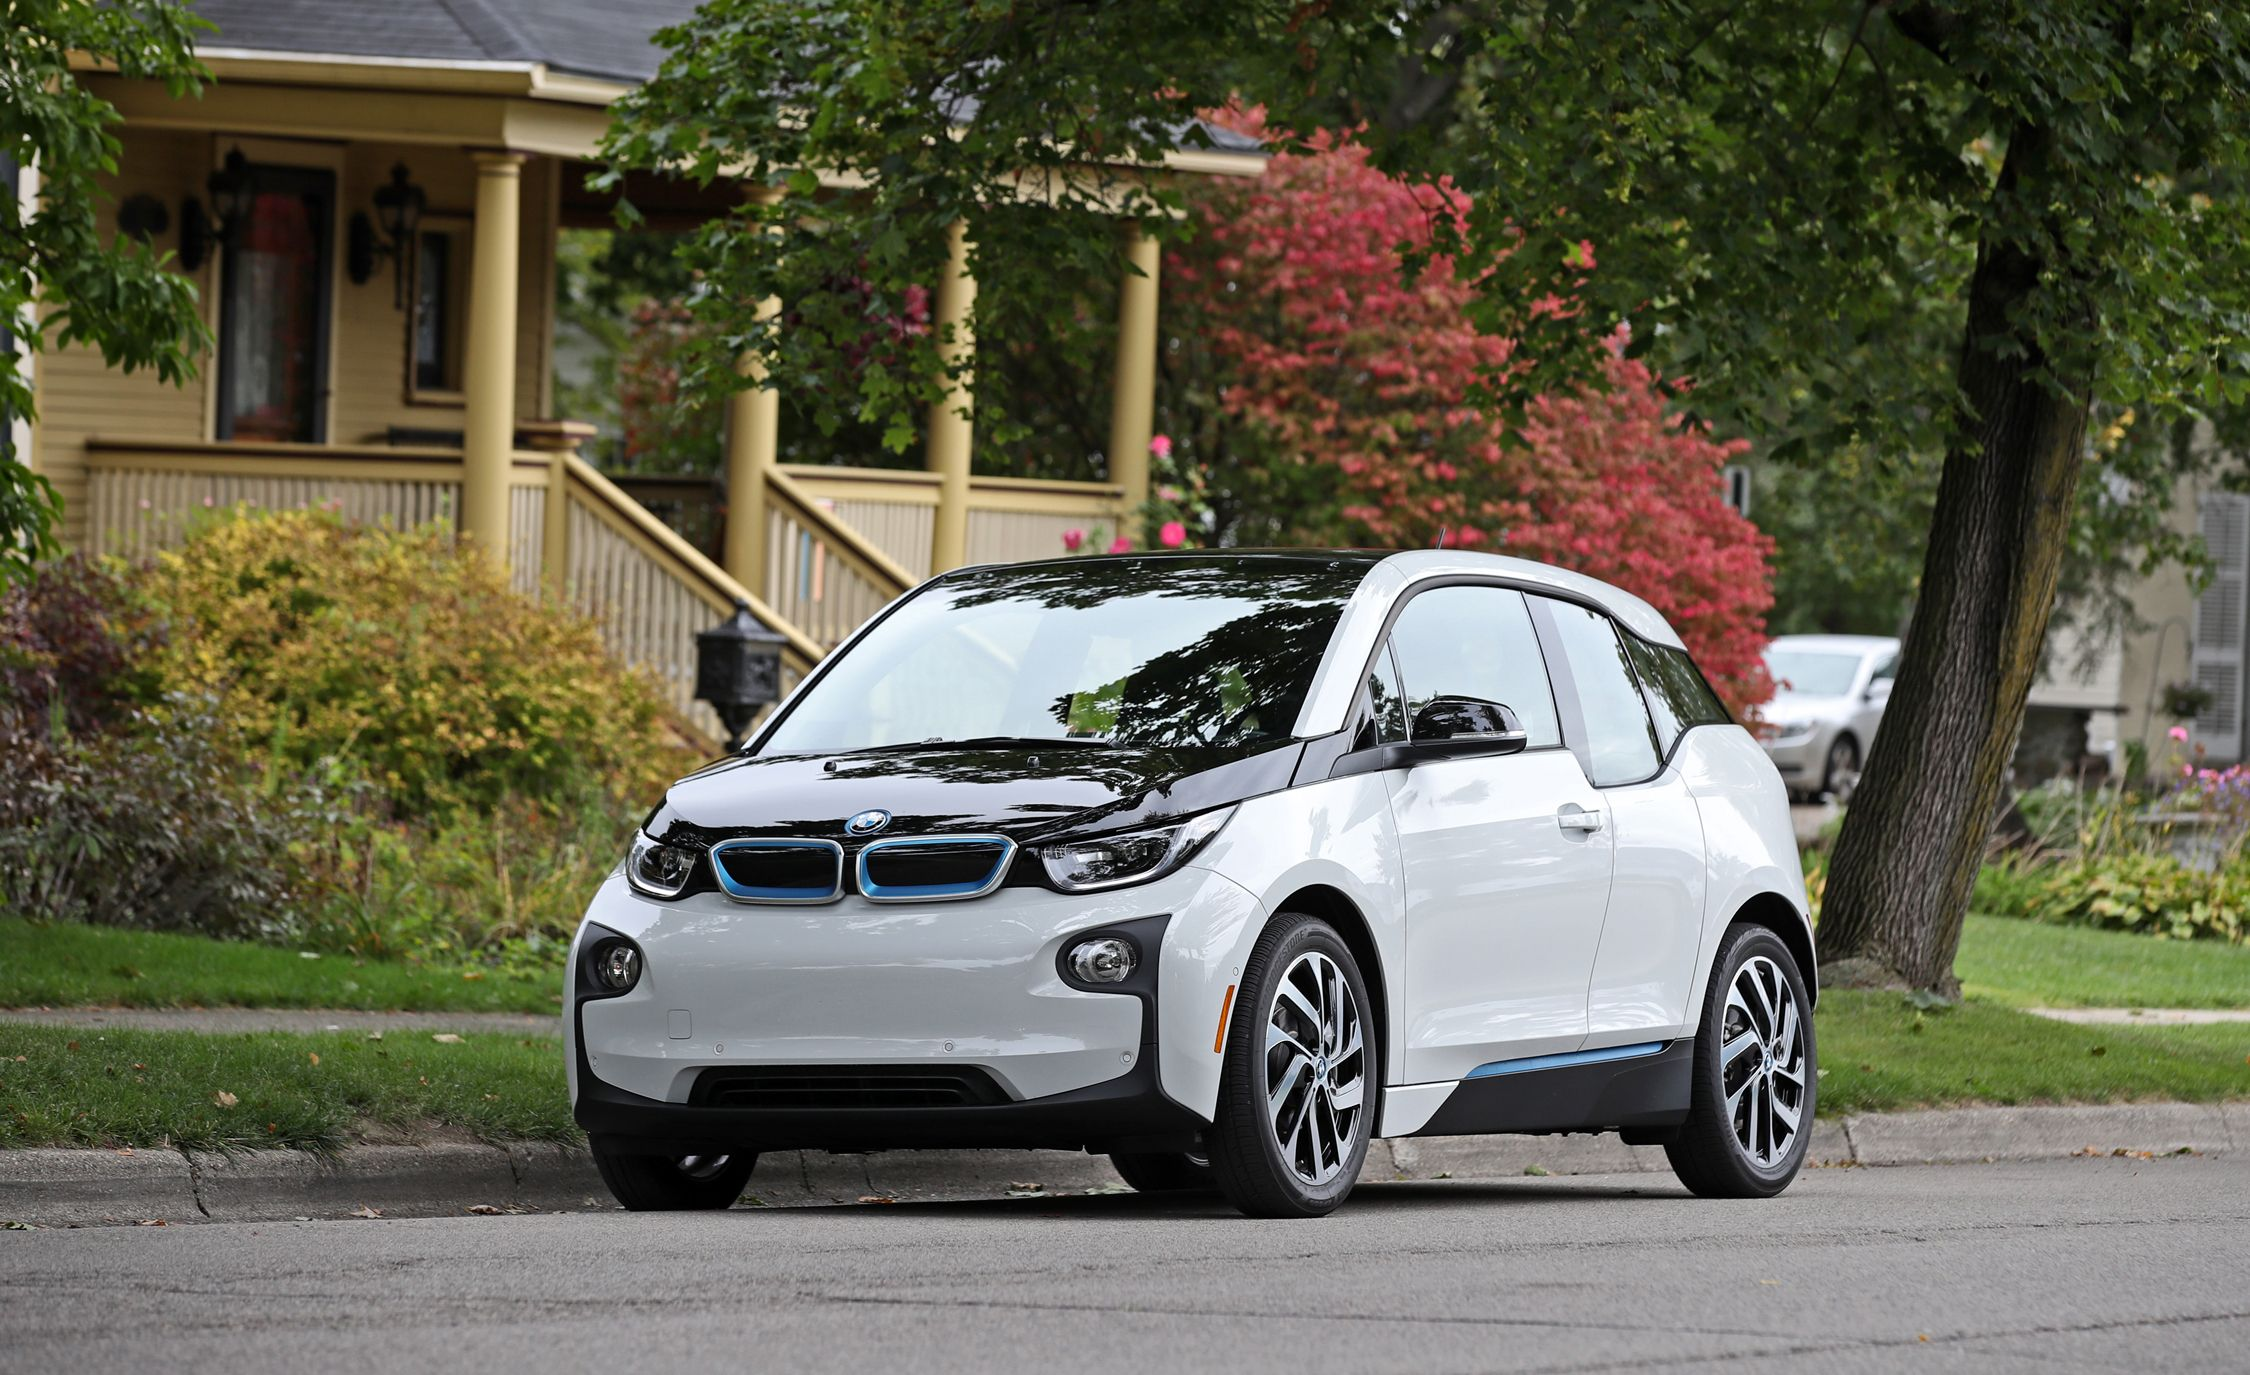 BMW i3 Reviews BMW i3 Price s and Specs